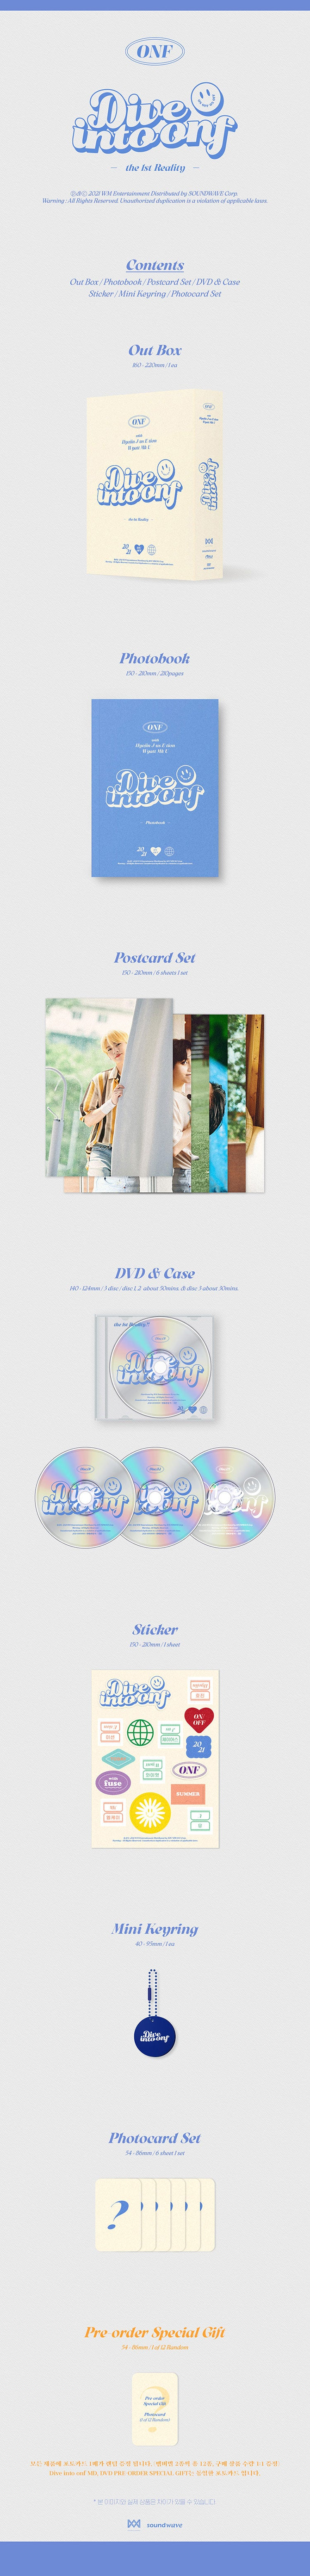 ONF - The 1st Reality Dive into ONF DVD